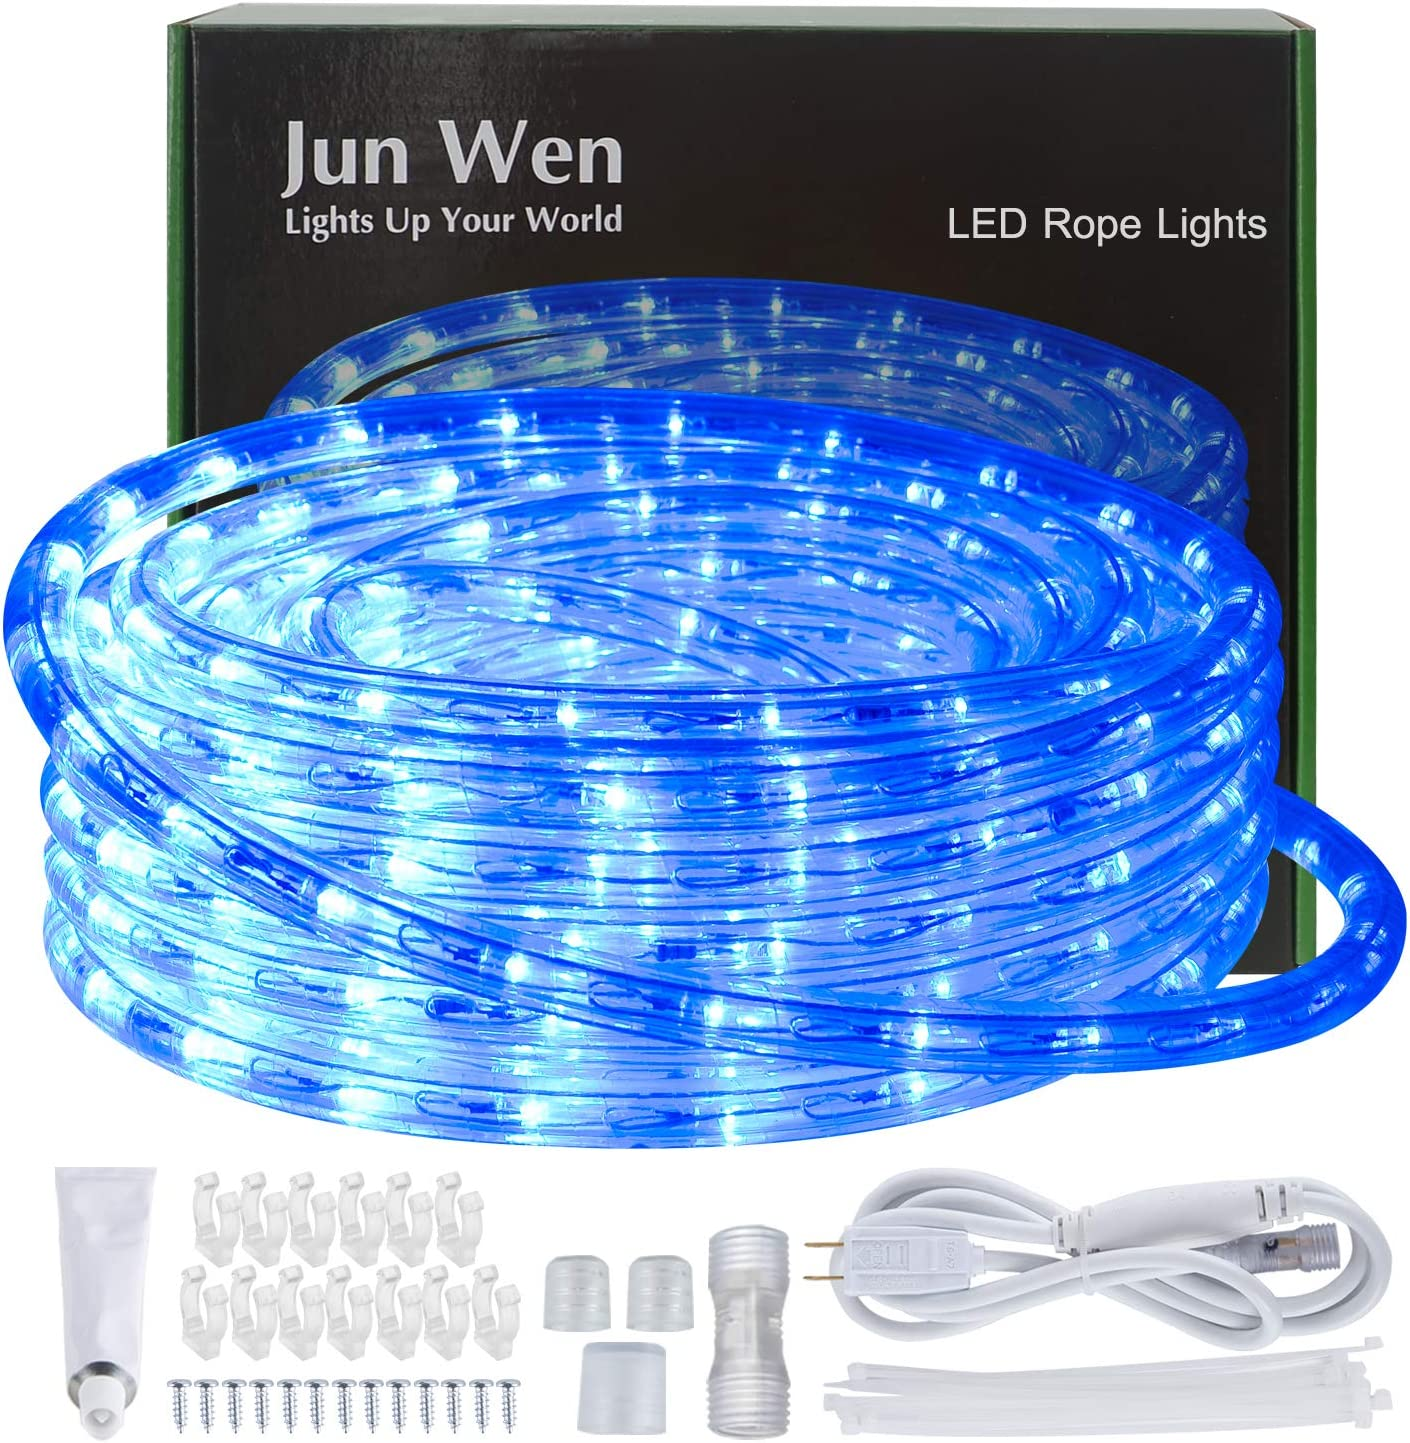 JUNWEN Blue Led Rope Strip Lights, Outdoor, Indoor, 39FT/12M, Waterproof, 432LEDs, String Lighting, Plug in 110V 8A Power Cord, Connectable, Cuttable, Flexible, 8A Fuse Holder Powered